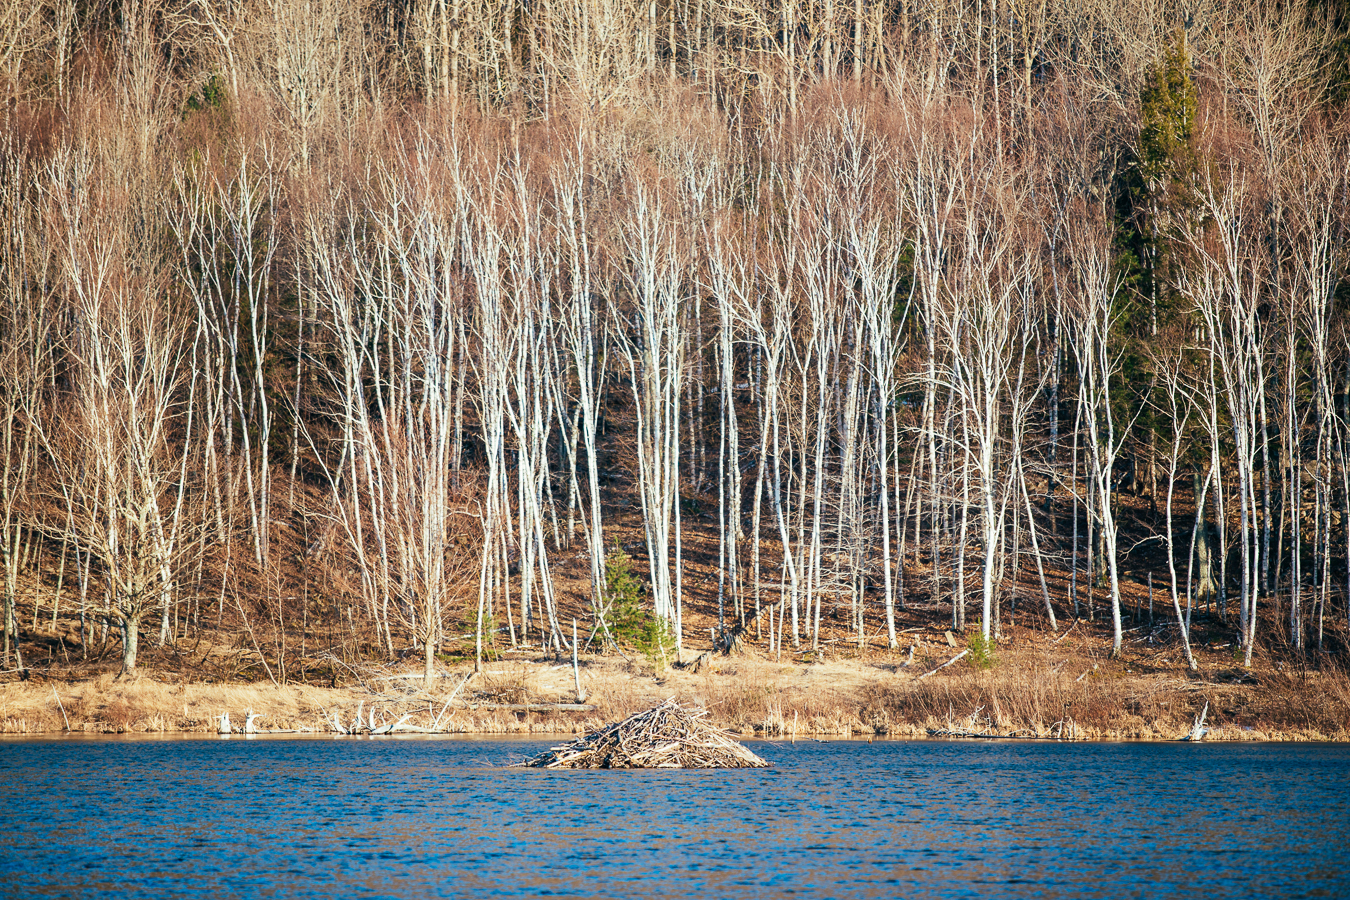 Beaver Island Lodge has rooms available.